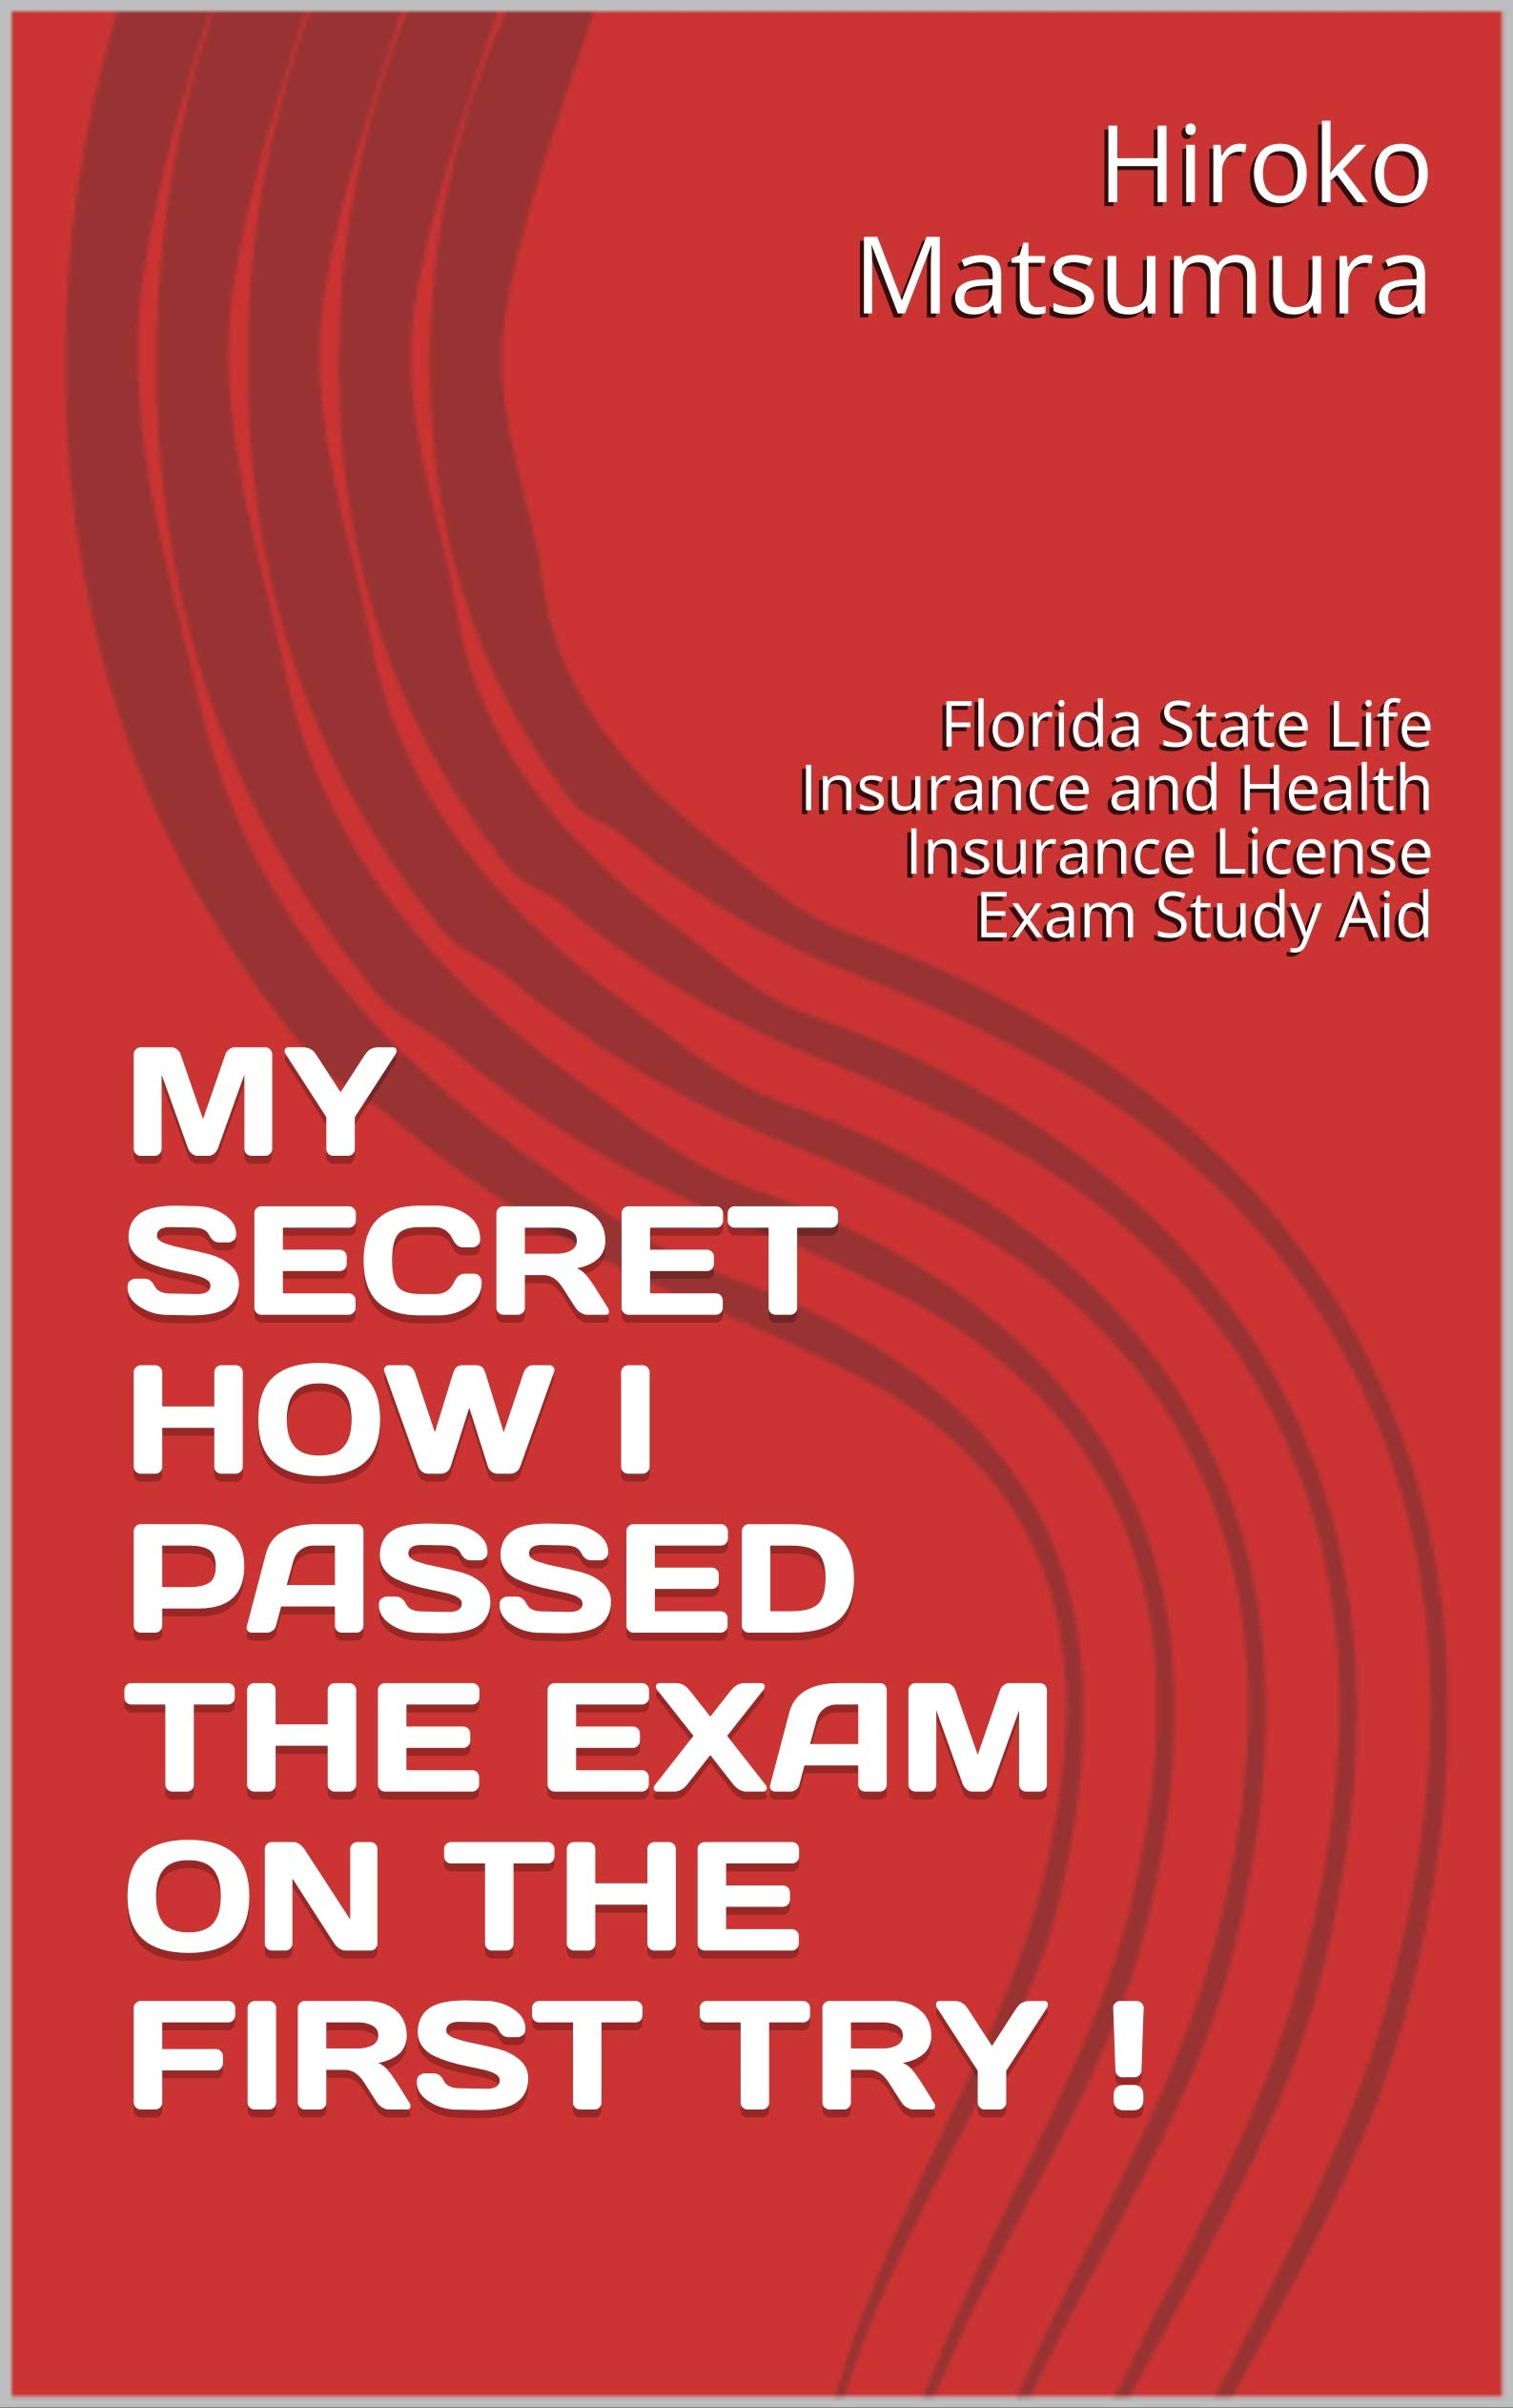 MY SECRET HOW I PASSED THE EXAM ON THE FIRST TRY !: Florida State Life Insurance and Health Insurance License Exam Study Aid